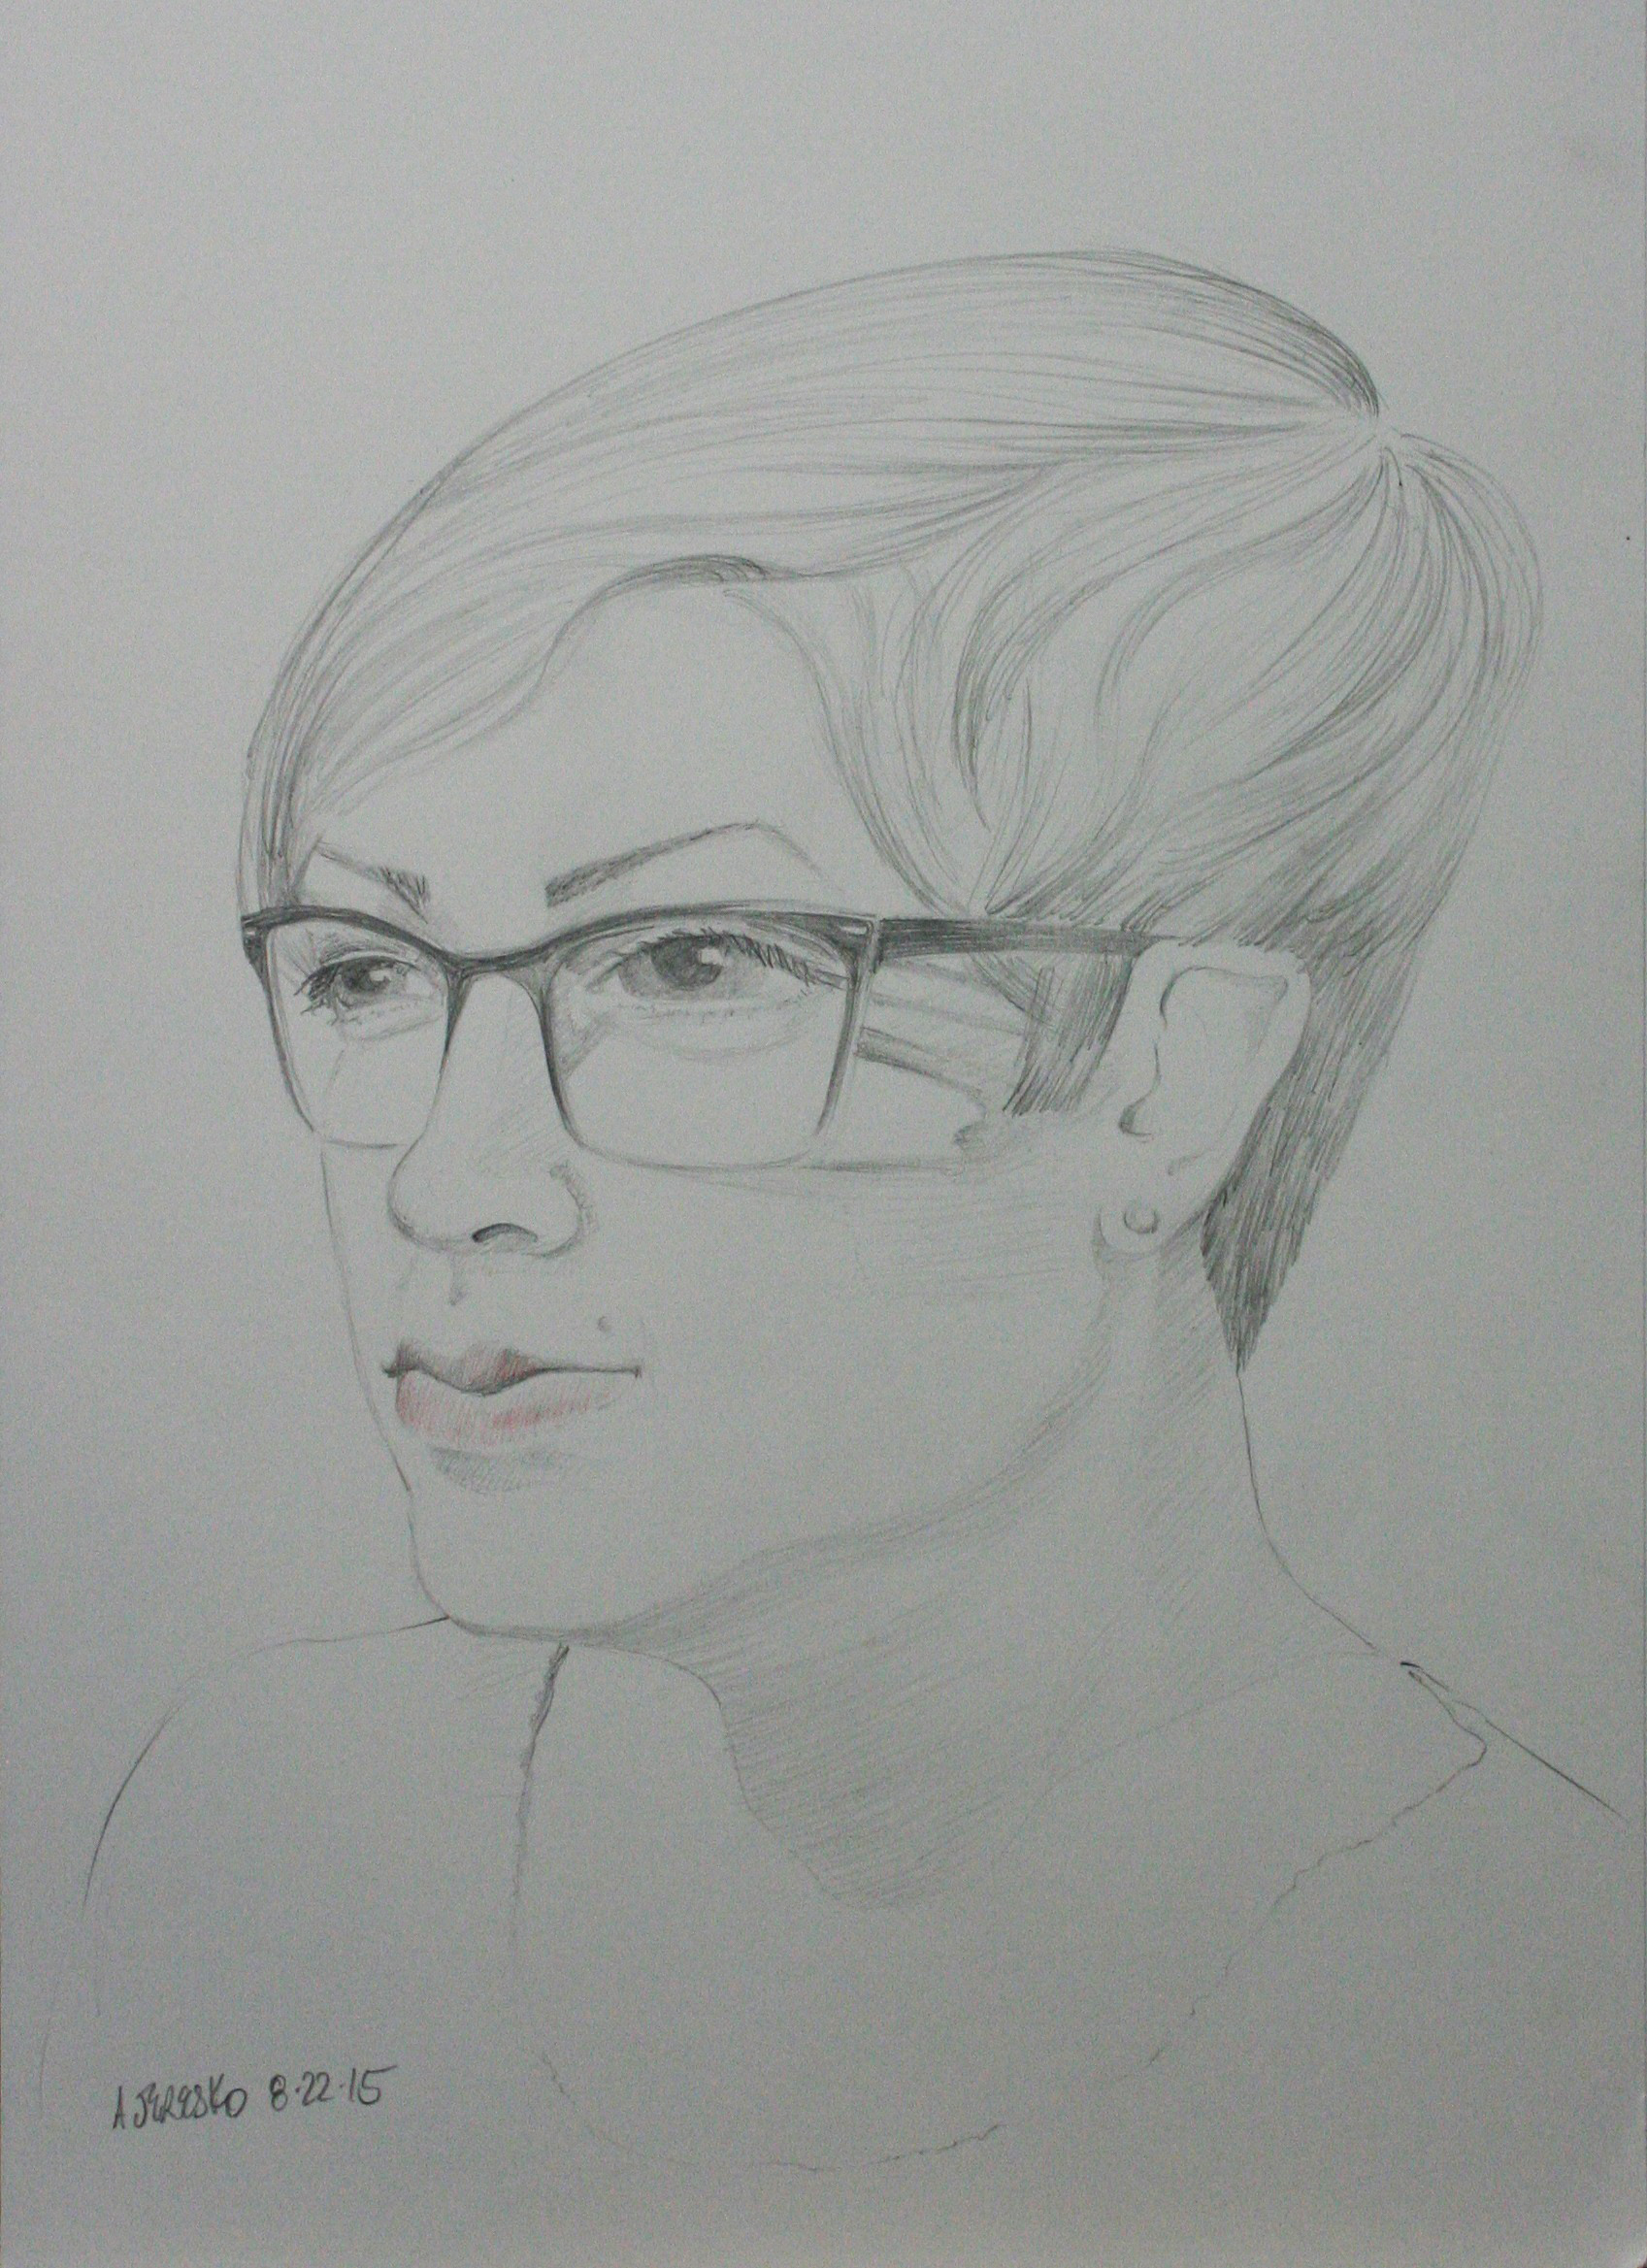 Alice Jeresko did this hour and a half drawing.